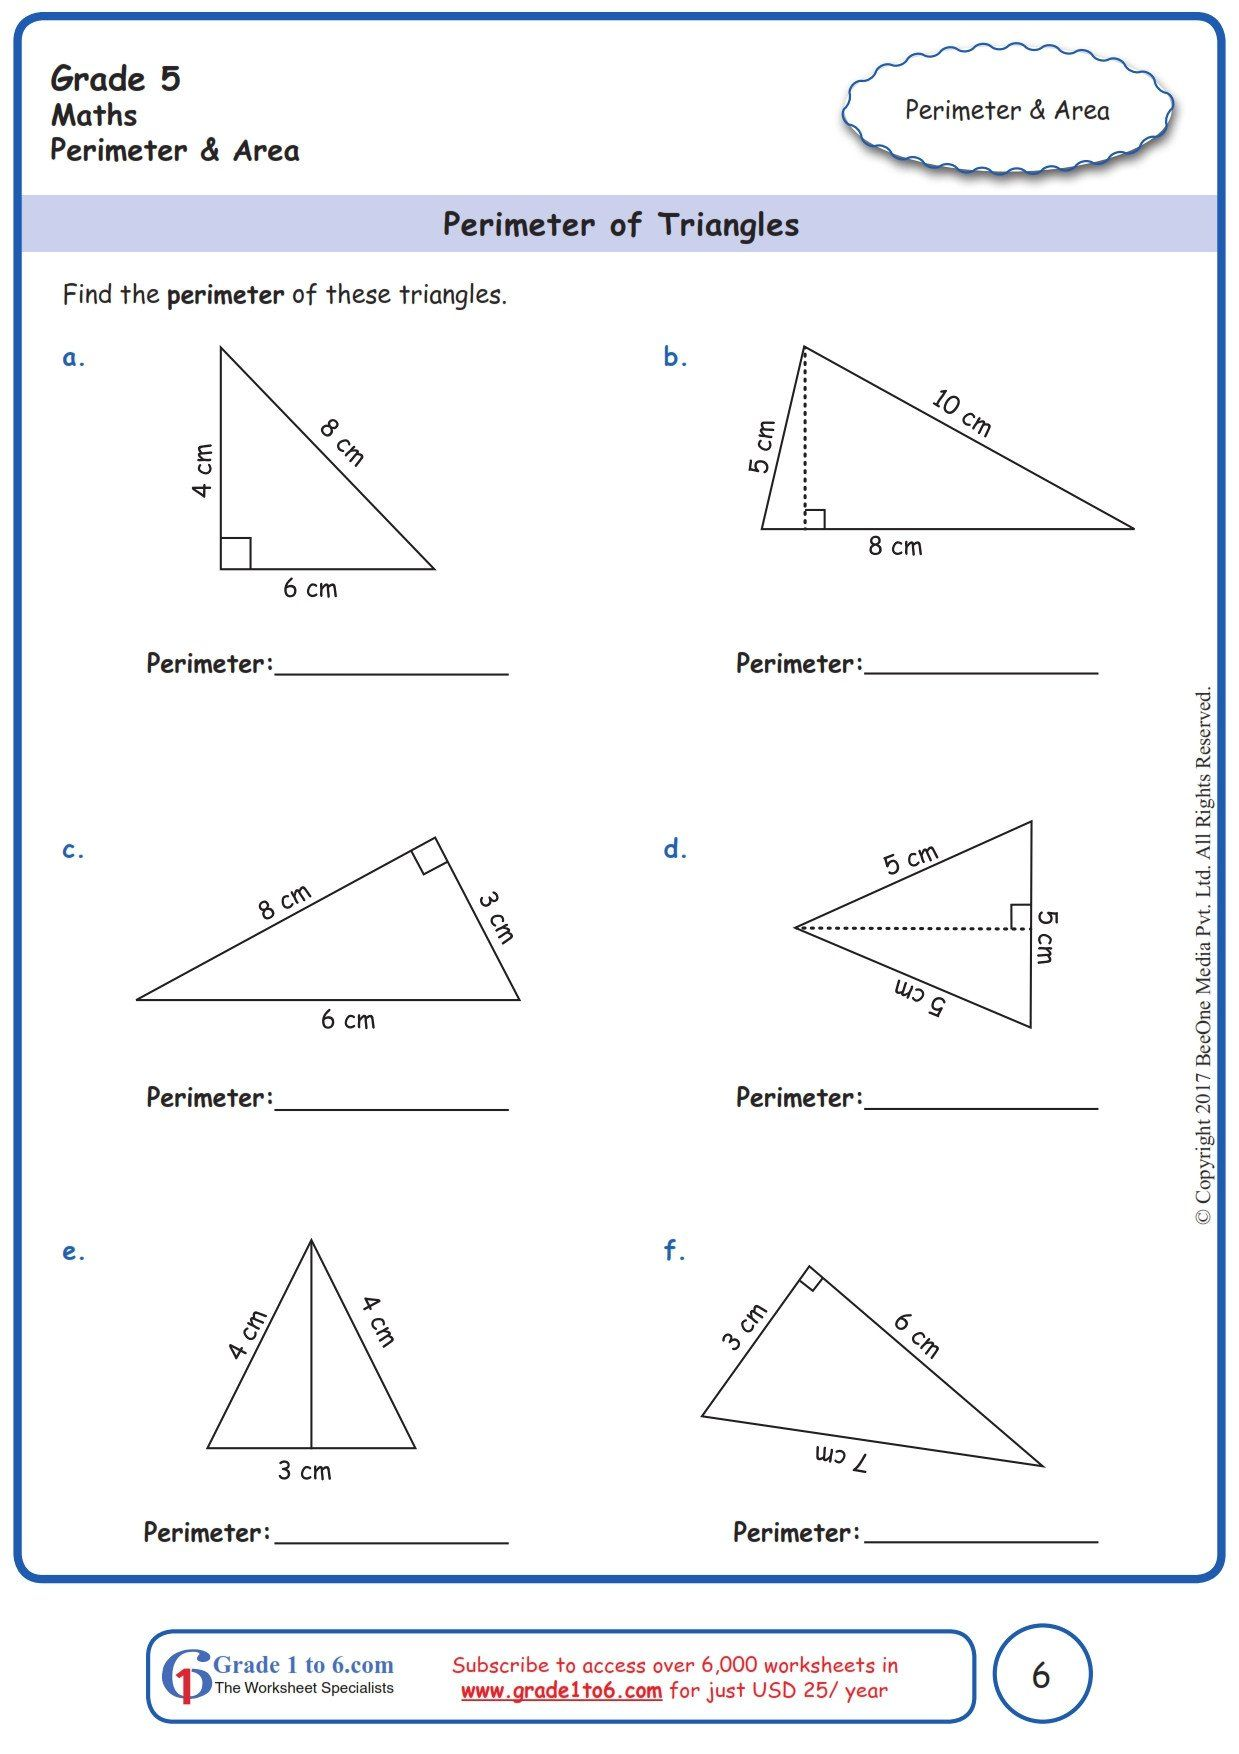 Triangles Worksheets 5th Grade Grade 5 Class 5 Finding Perimeter Of Triangle Worksheets Triangle Worksheet Perimeter Worksheets Free Math Worksheets